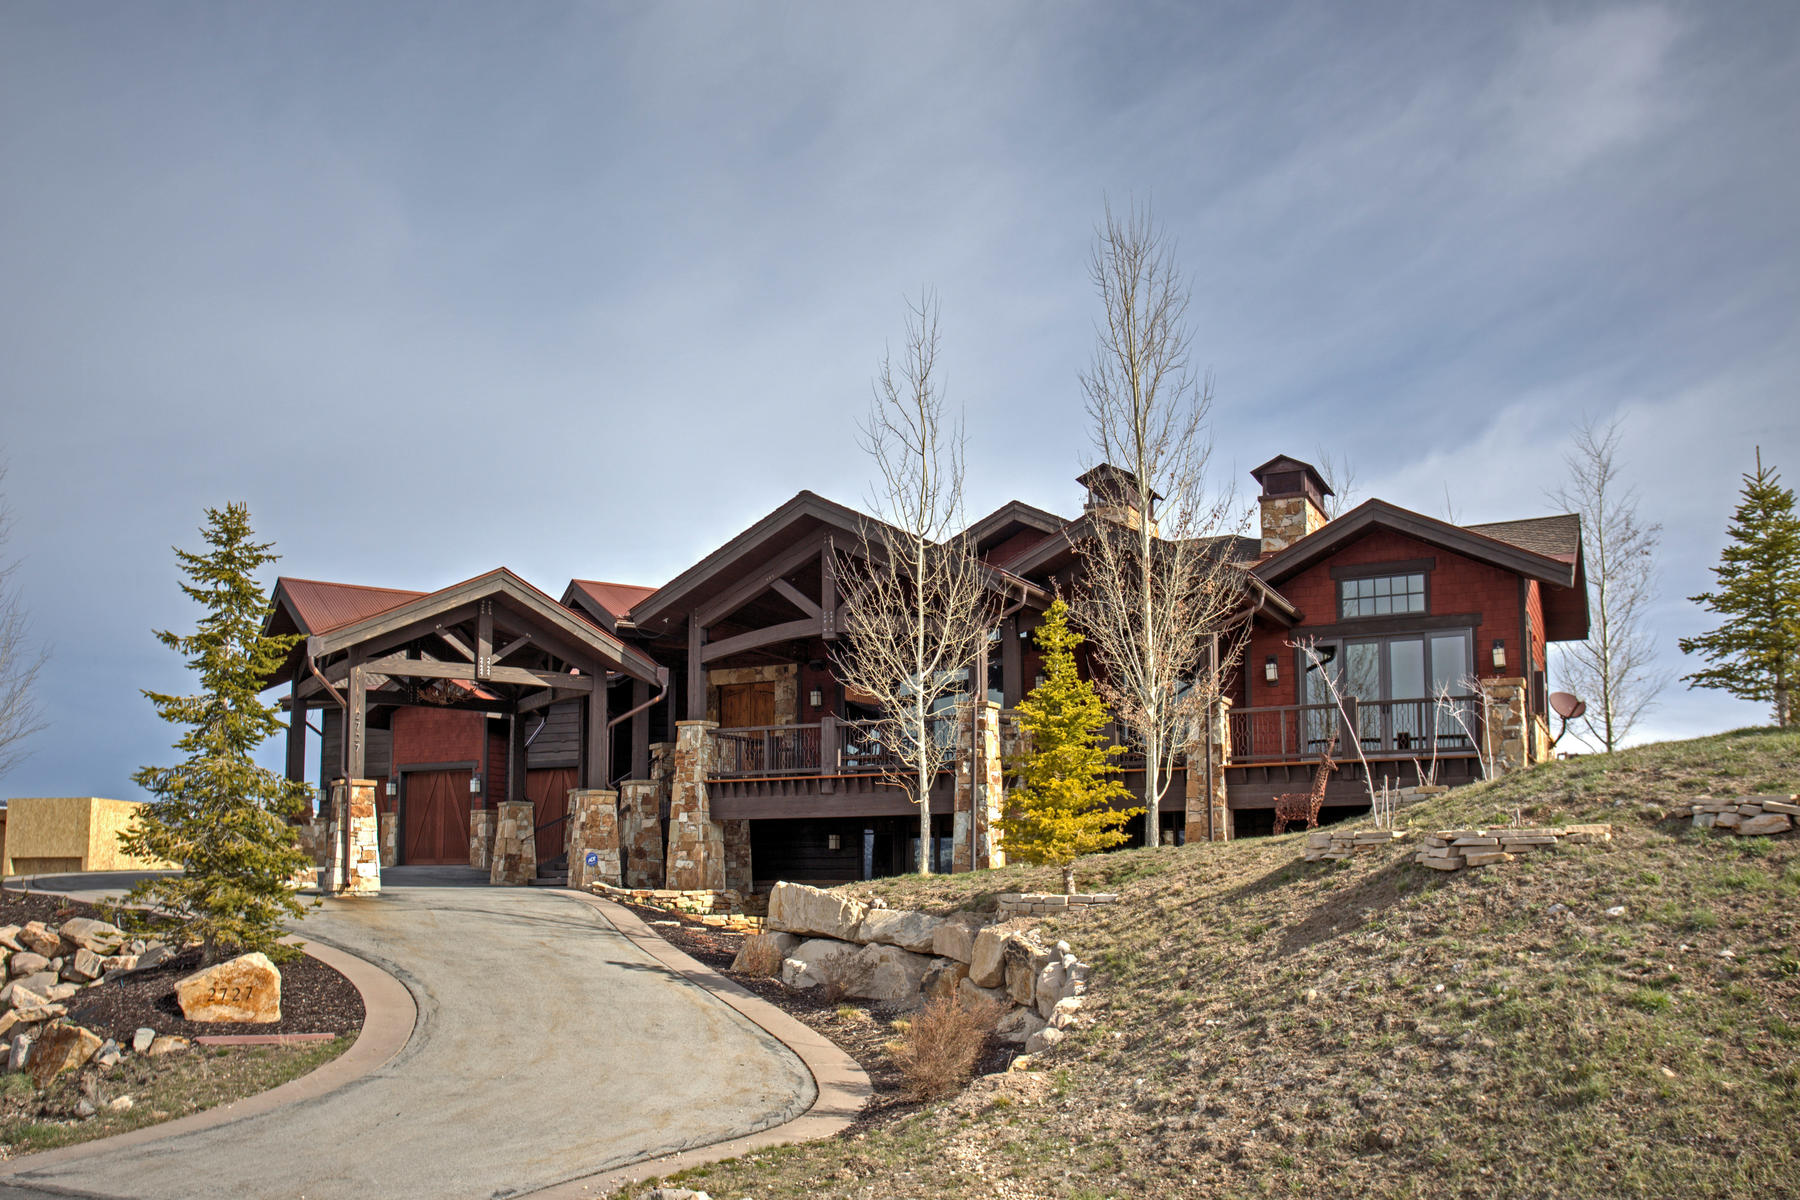 Single Family Home for Sale at Immaculate West View Home in Promontory 2727 E Westview Trl, Park City, Utah, 84098 United States